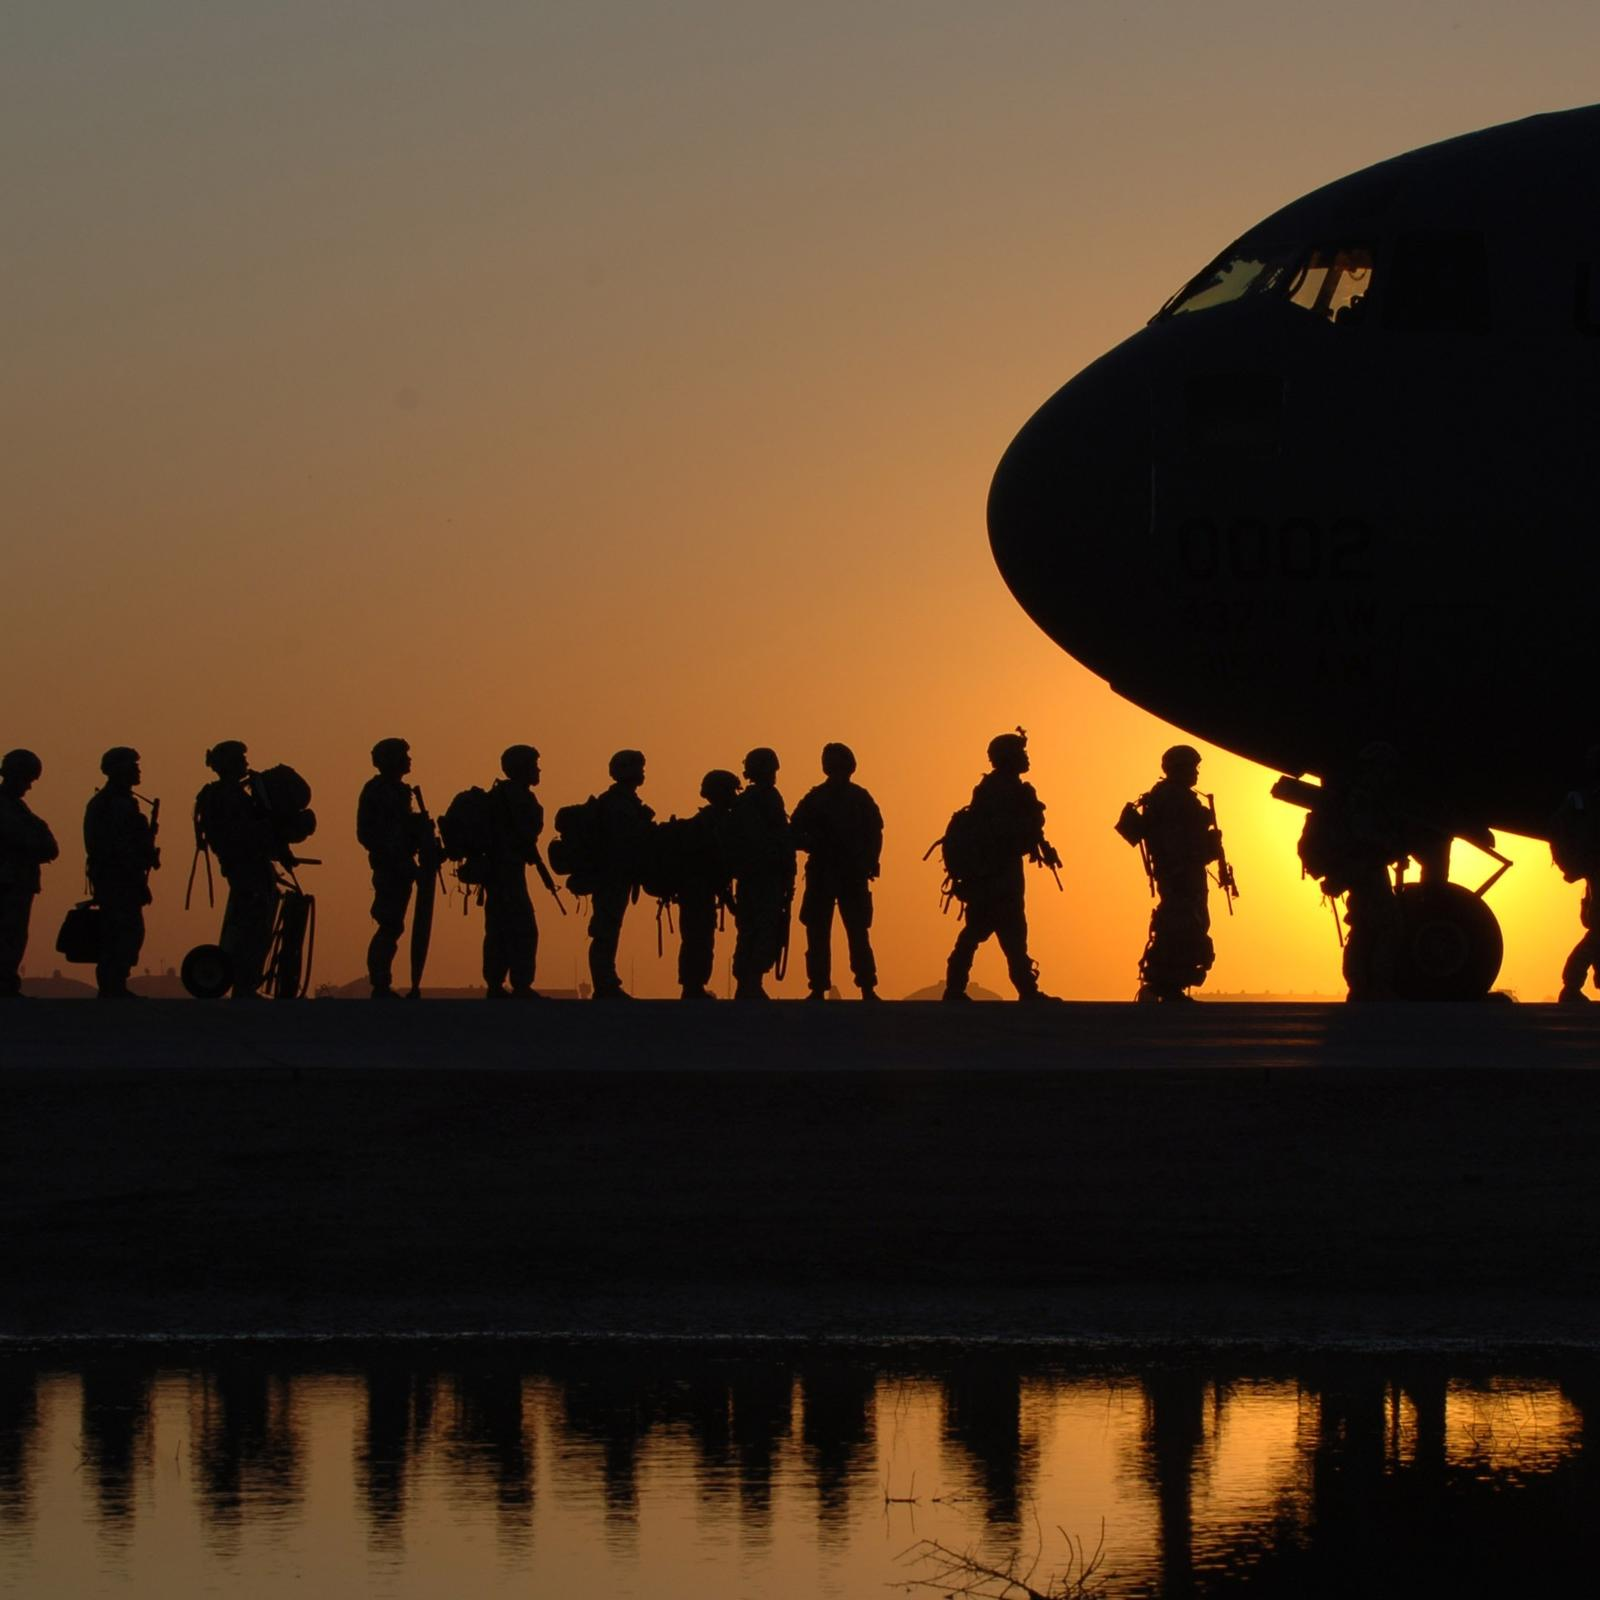 Soldiers silhouettes getting on plane